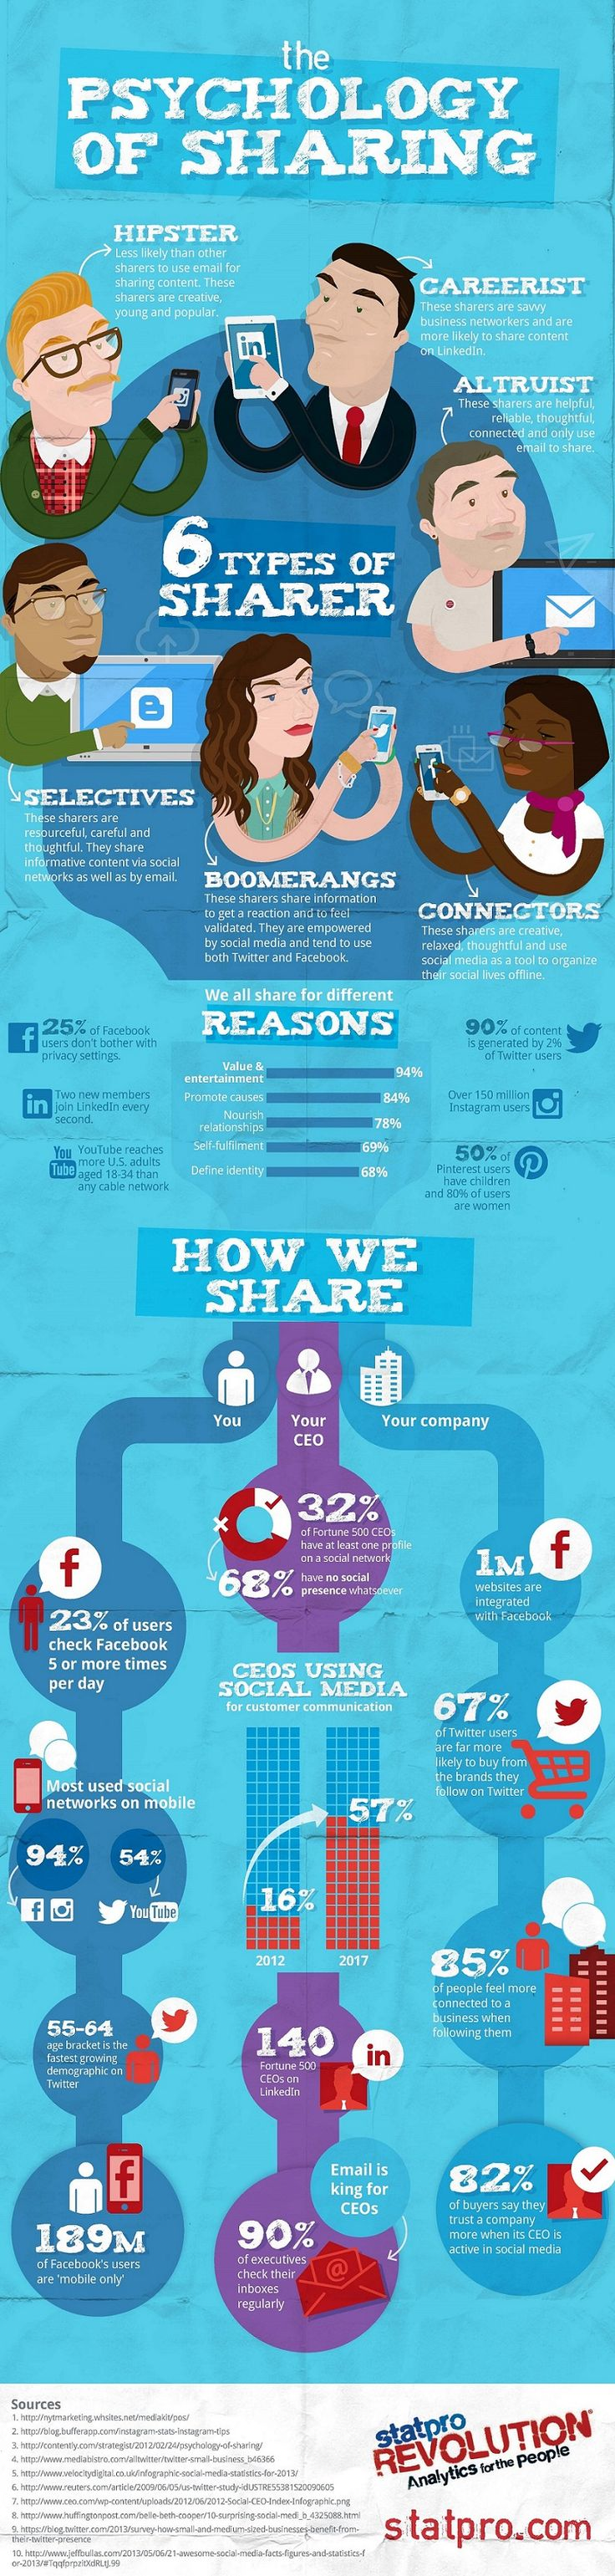 The Psychology of Sharing #socialmedia #infographic